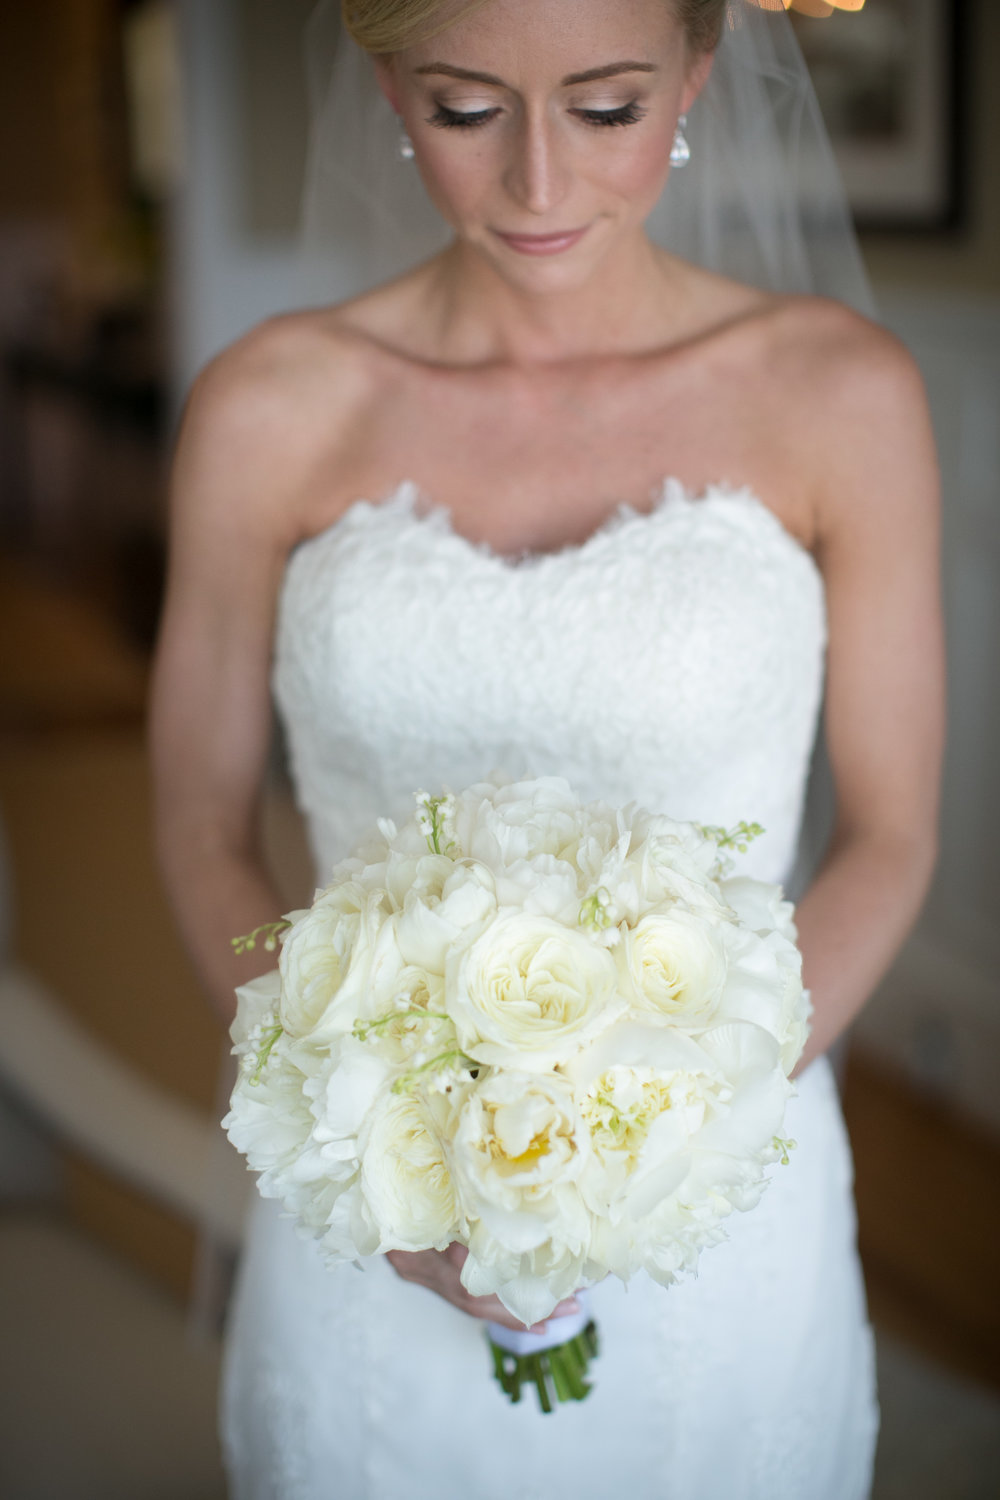 bride and bouquet.JPG